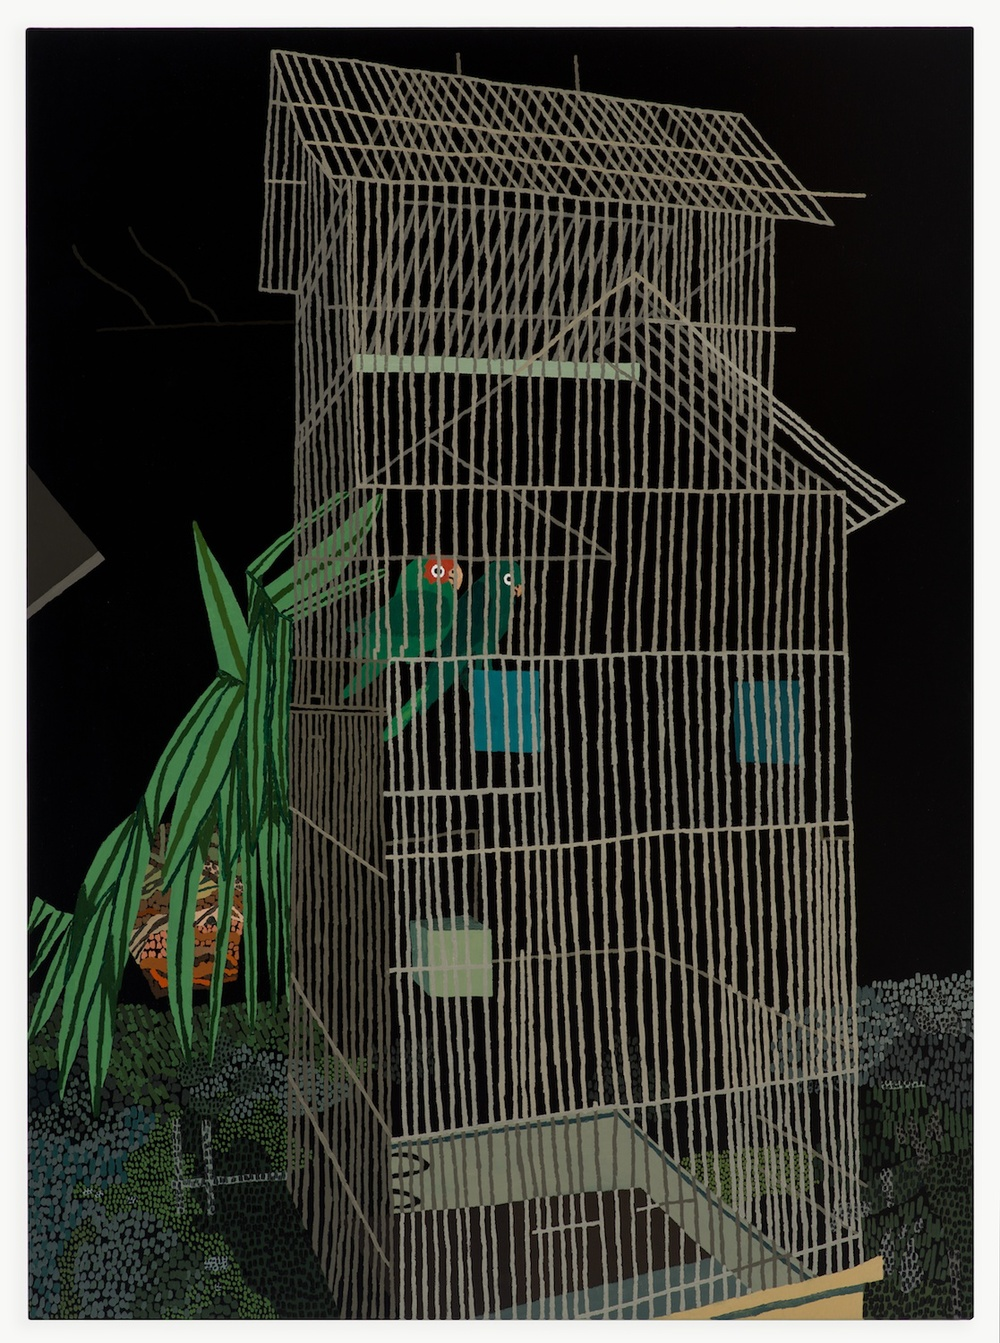 Jonas Wood  2 Birds at Night  2013 Oil and acrylic on linen 60h x 44w in JW154